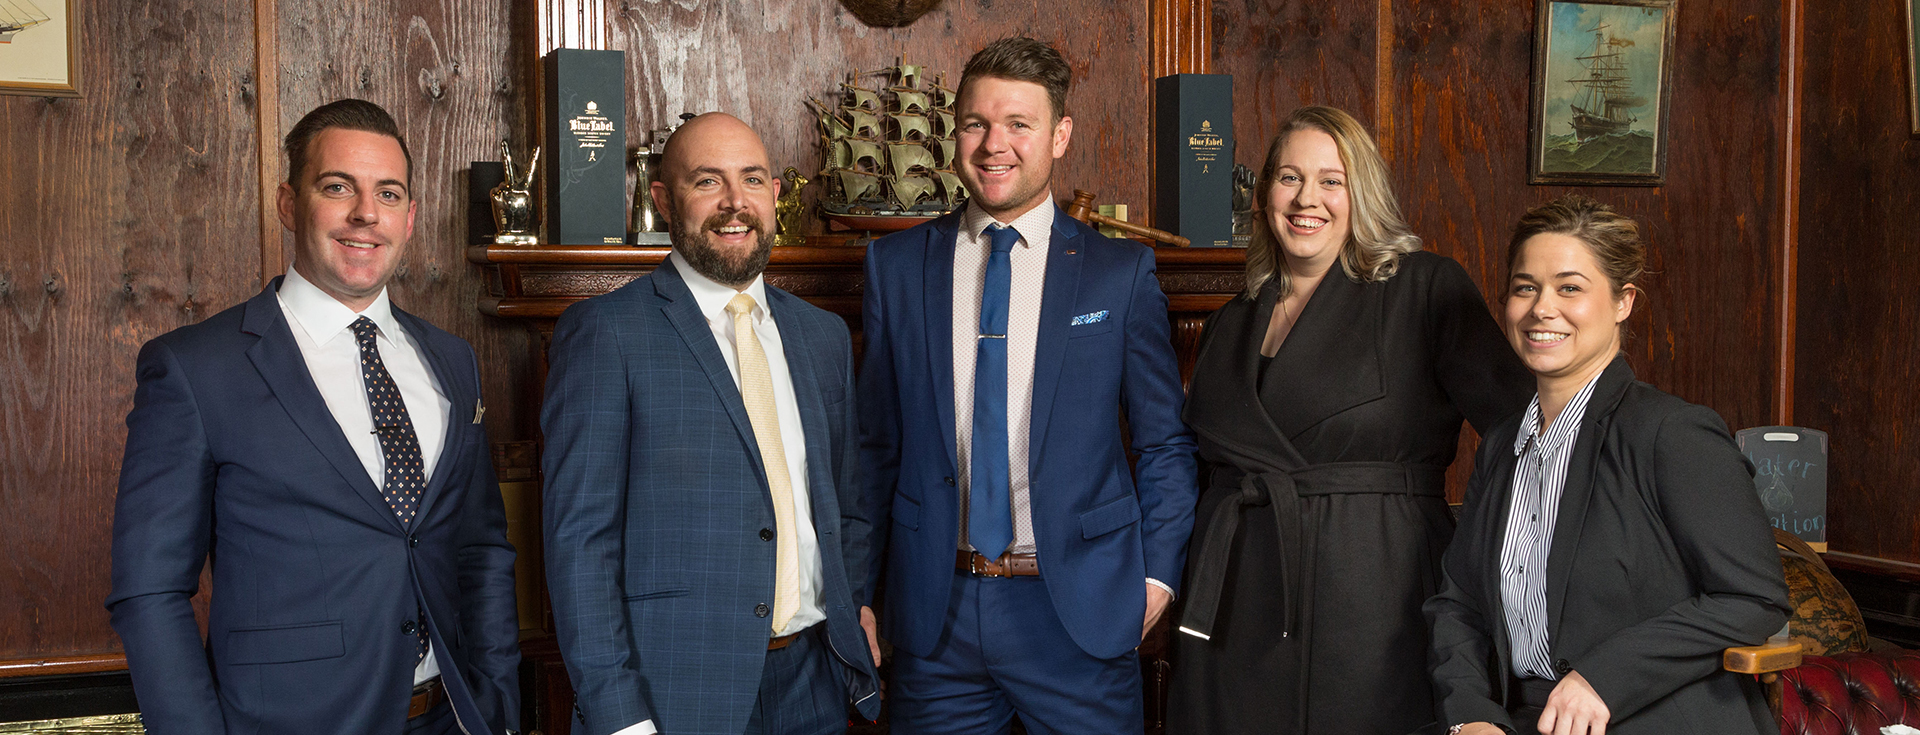 I had the pleasure to work with Clark, Carla and Lauren in the industry, and can not recommend each of them to anyone wanting a professional, ethical and honest service.